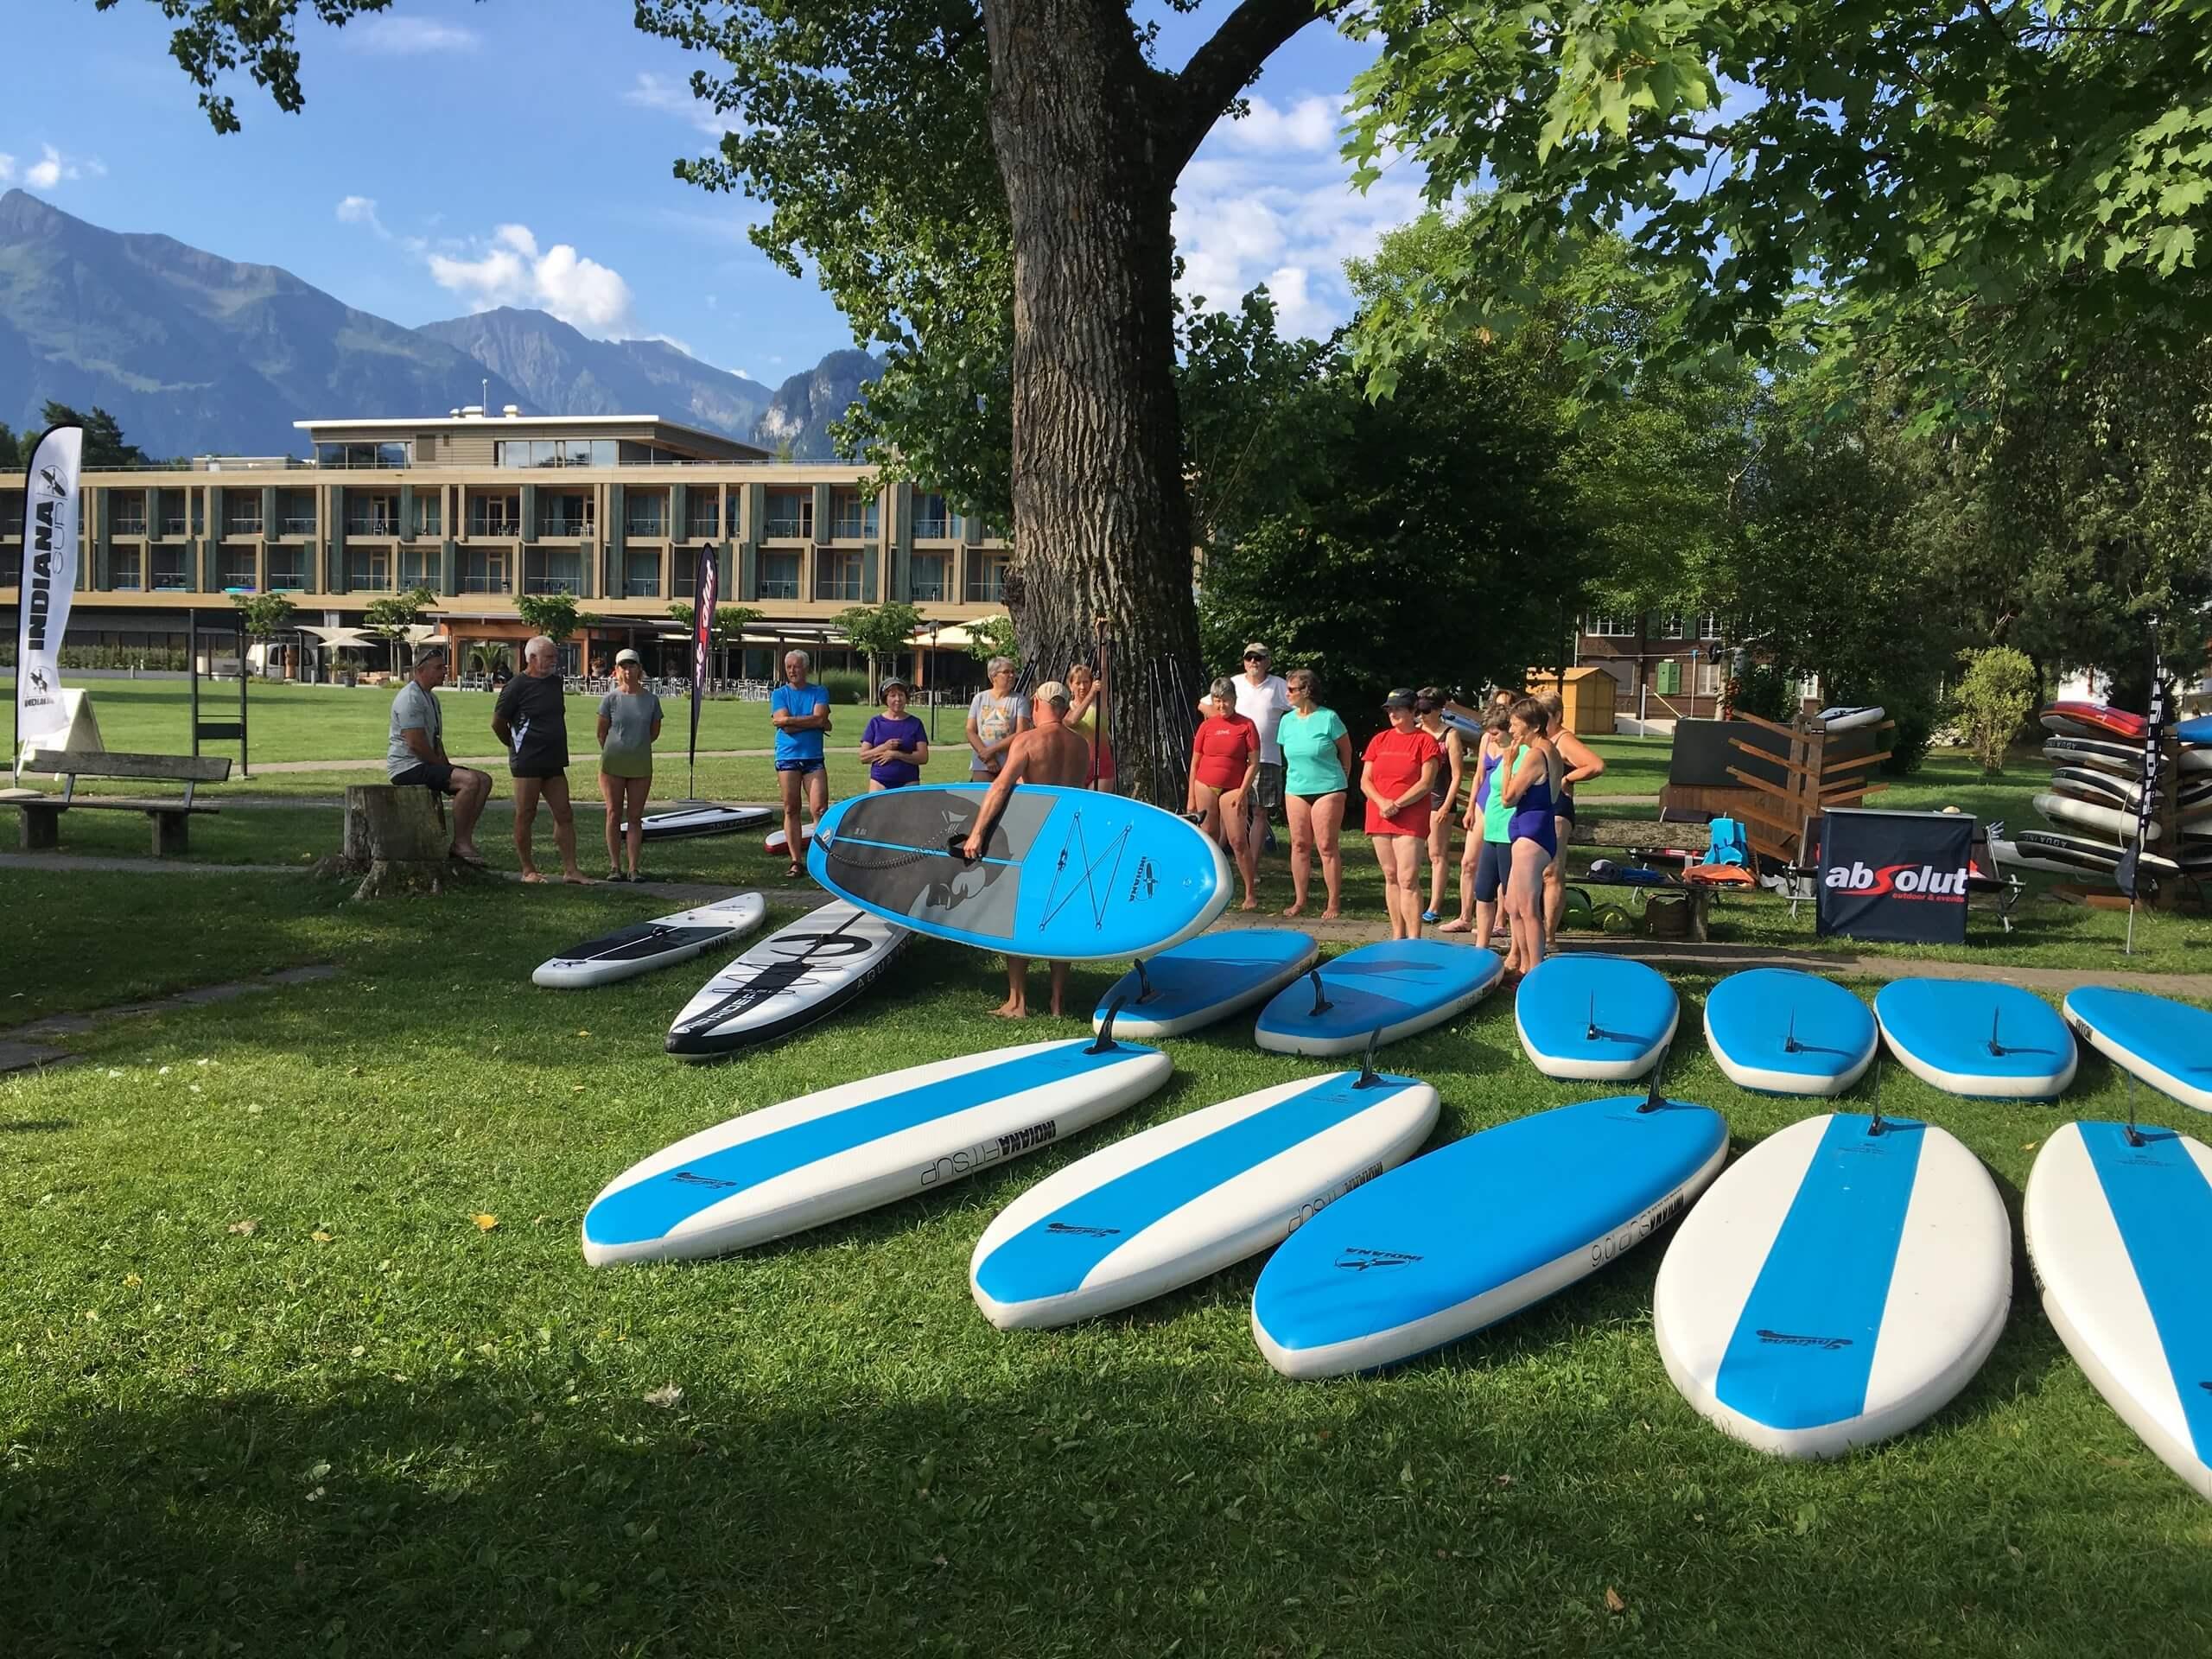 absolut-outdoor-und-events-sup-vermietung-sommer